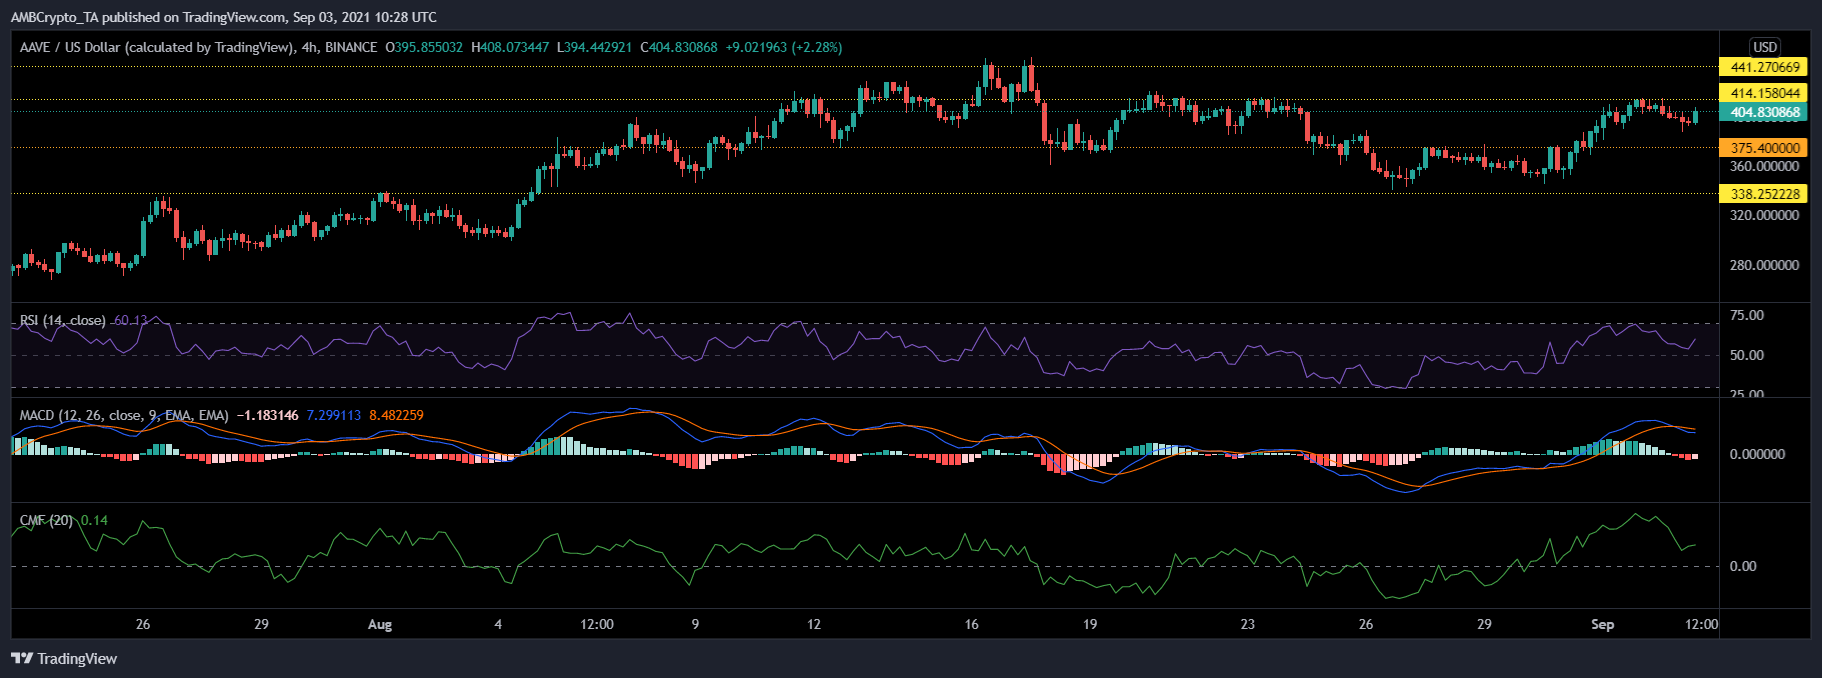 Polkadot, AAVE and Dogecoin Price Analysis: September 3rd